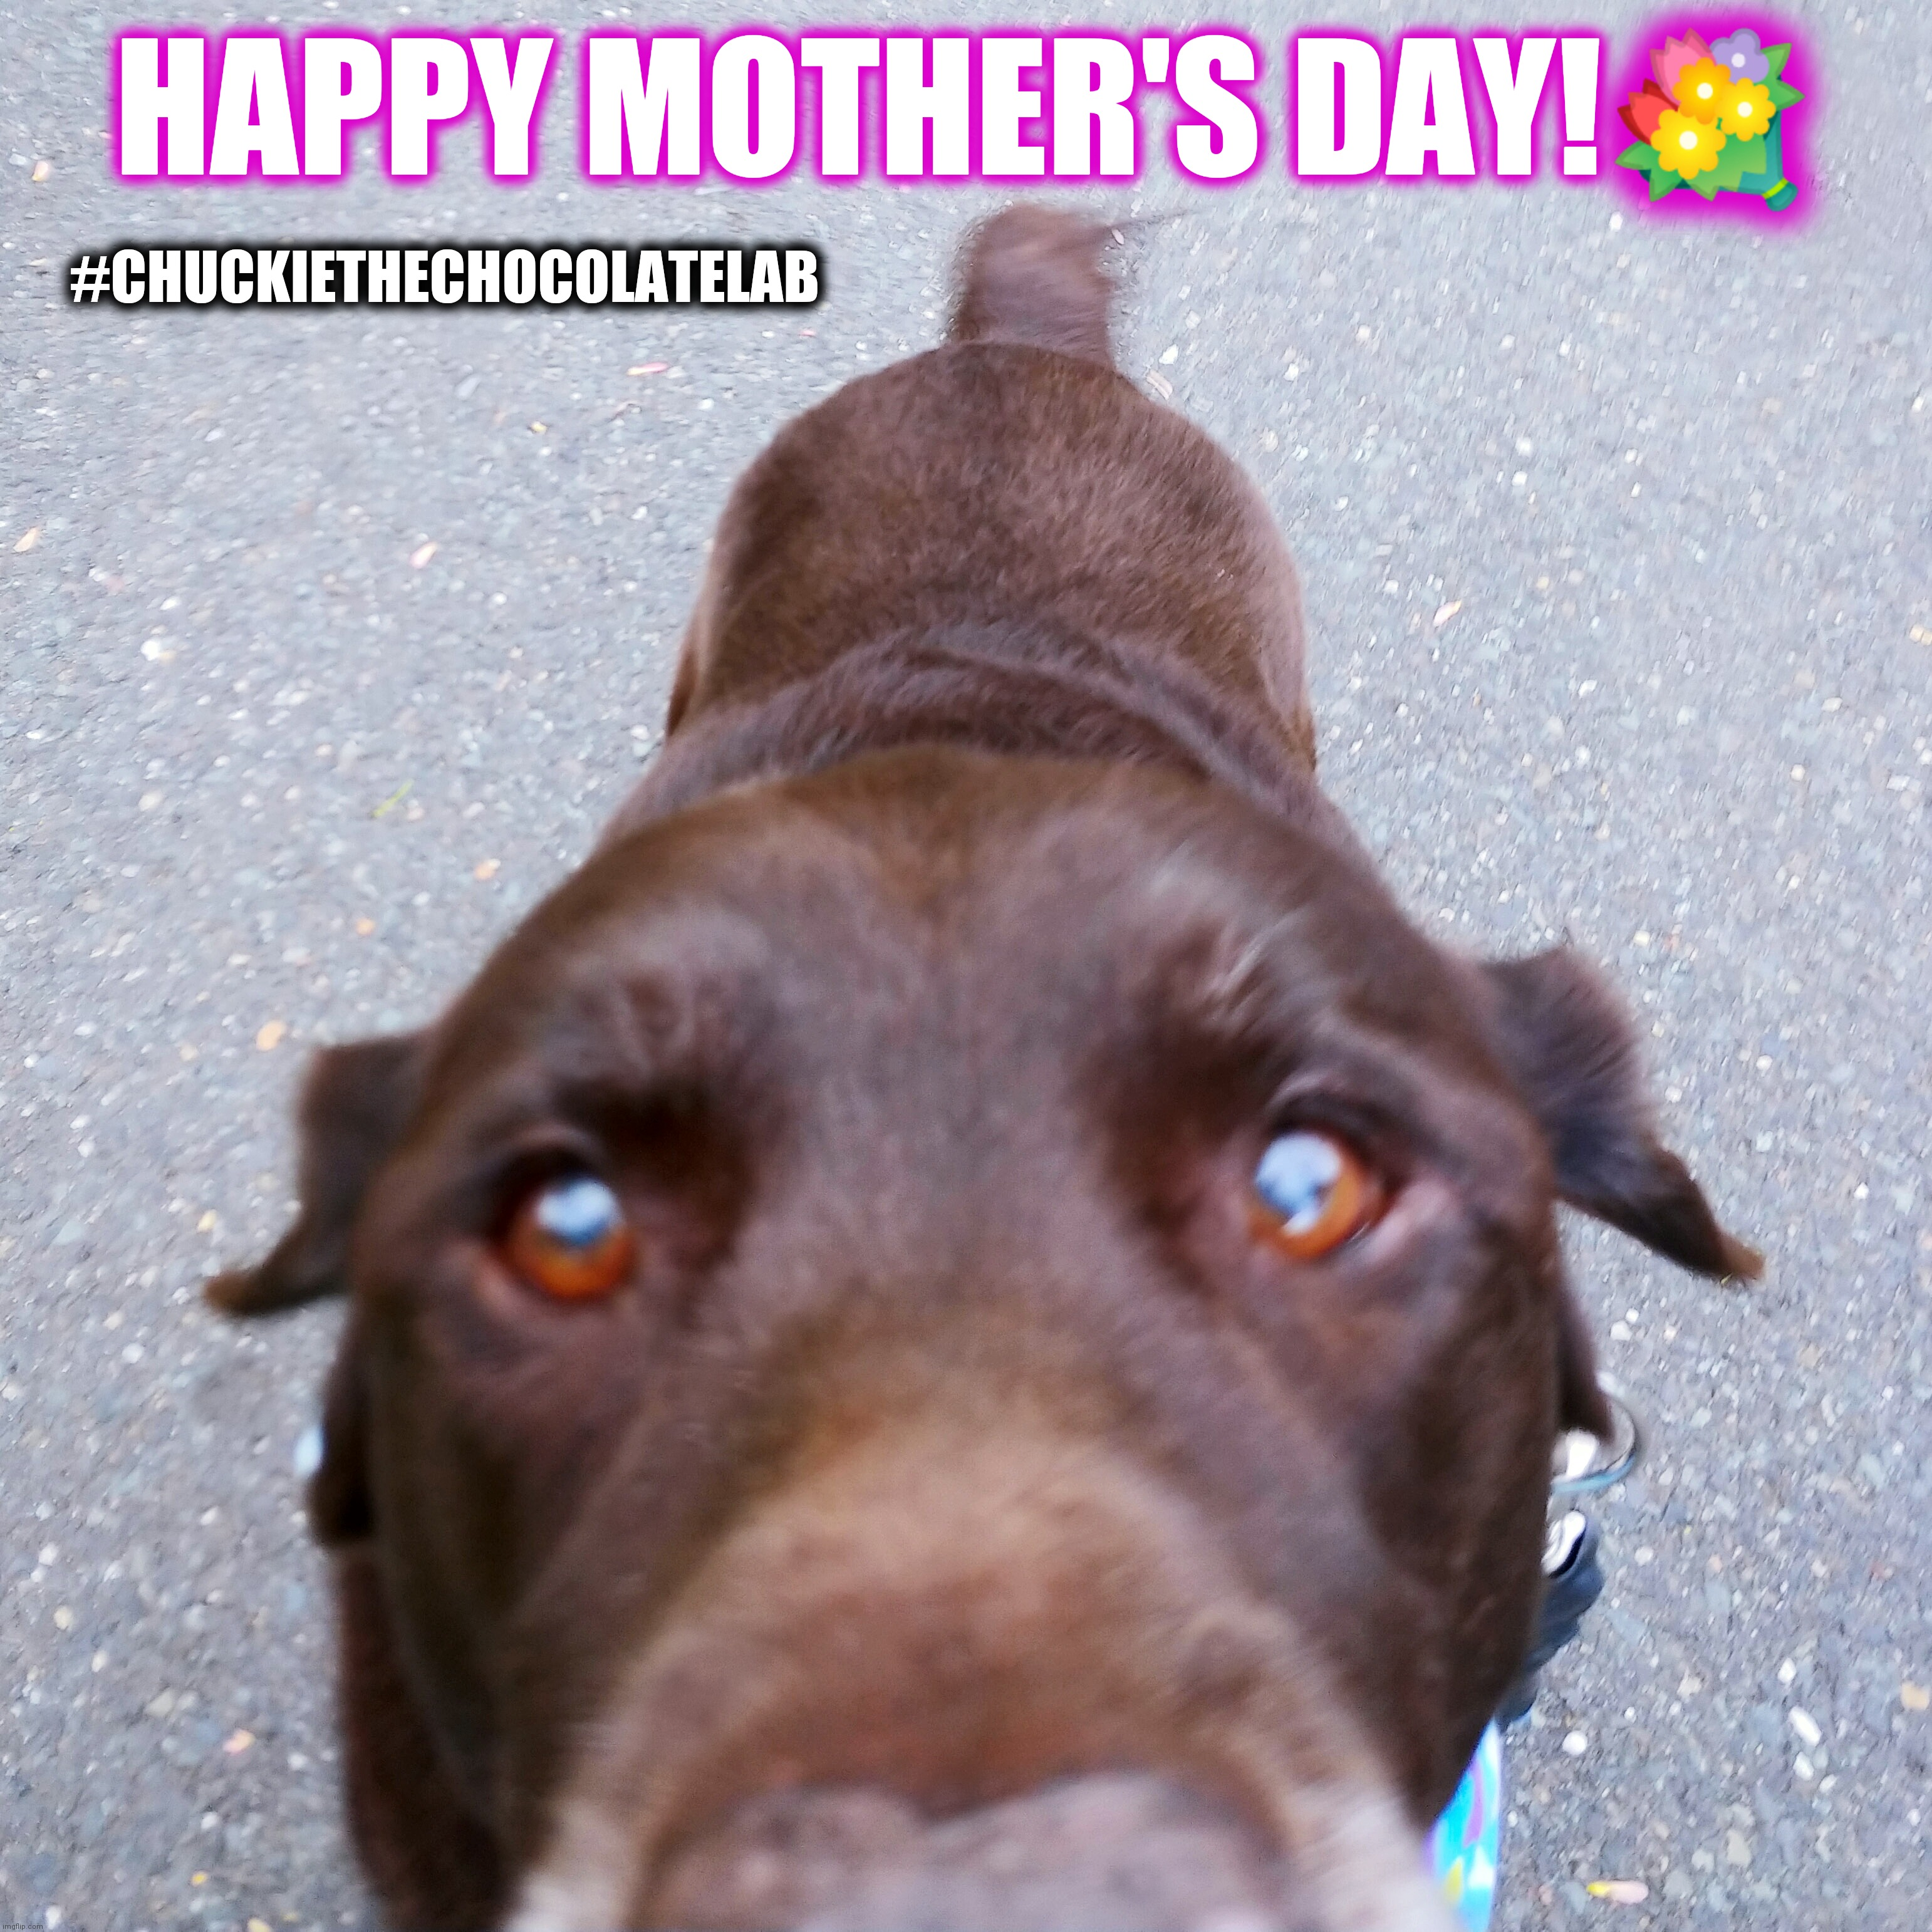 Happy Mother's Day! |  HAPPY MOTHER'S DAY!💐; #CHUCKIETHECHOCOLATELAB | image tagged in chuckie the chocolate lab,dogs,mother's day,cute animals,memes,happy mother's day | made w/ Imgflip meme maker